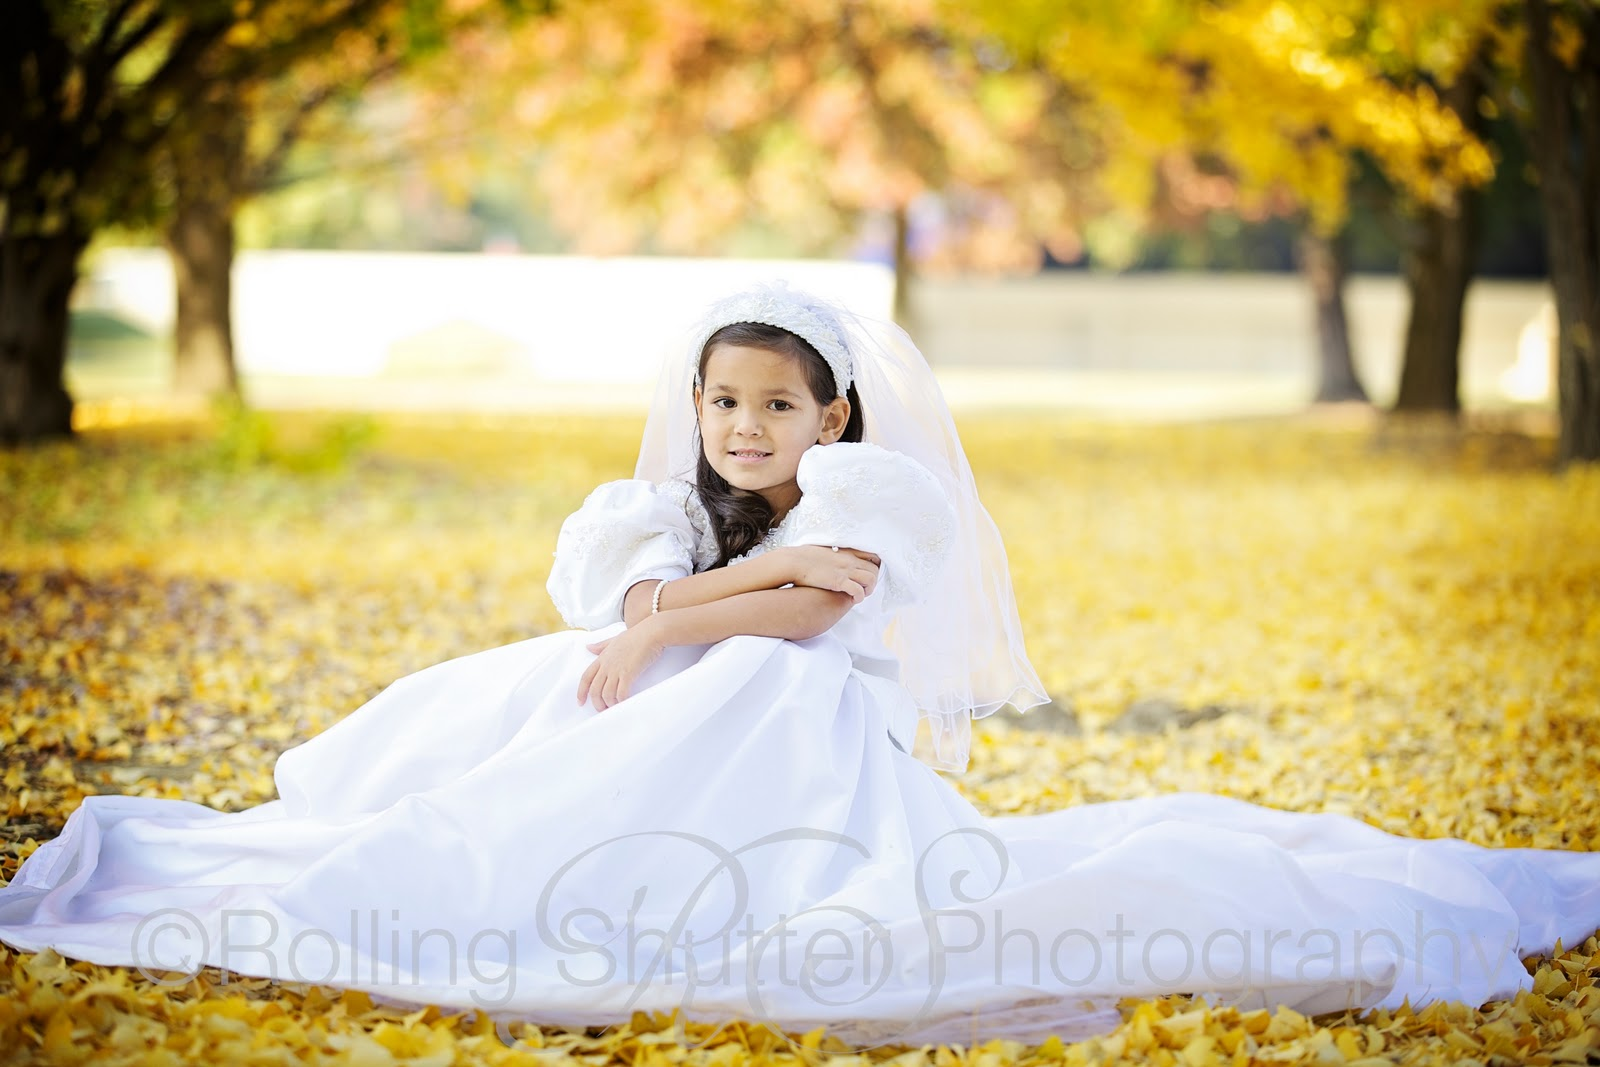 bella motherdaughter wedding dress mom's wedding dress Bella Mother Daughter Wedding Dress Bakersfield Children s Photographer